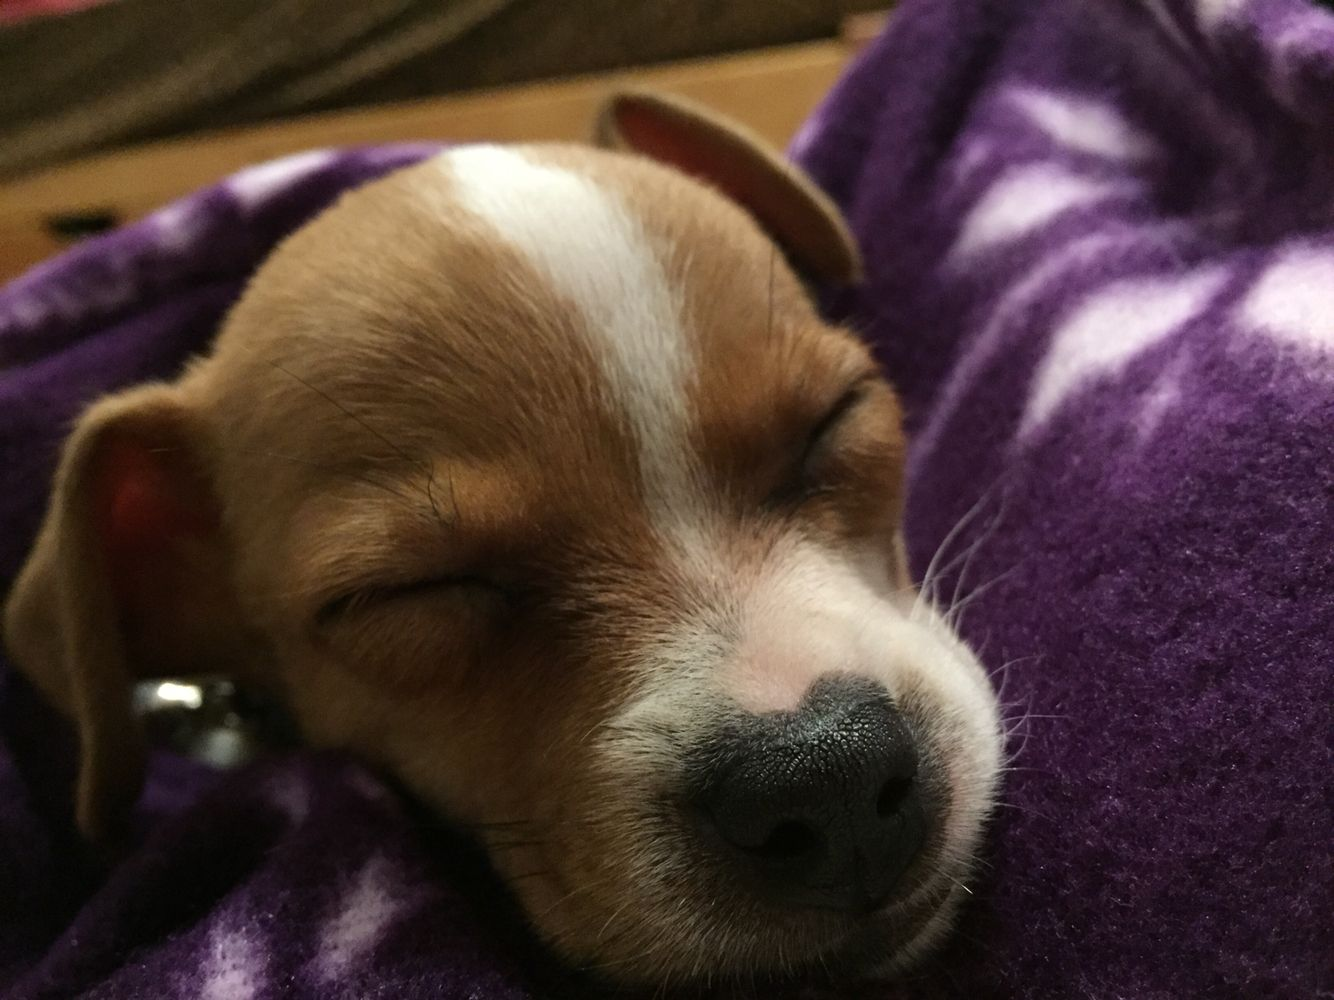 Adorable puppy i watched over cute pet pics pinterest